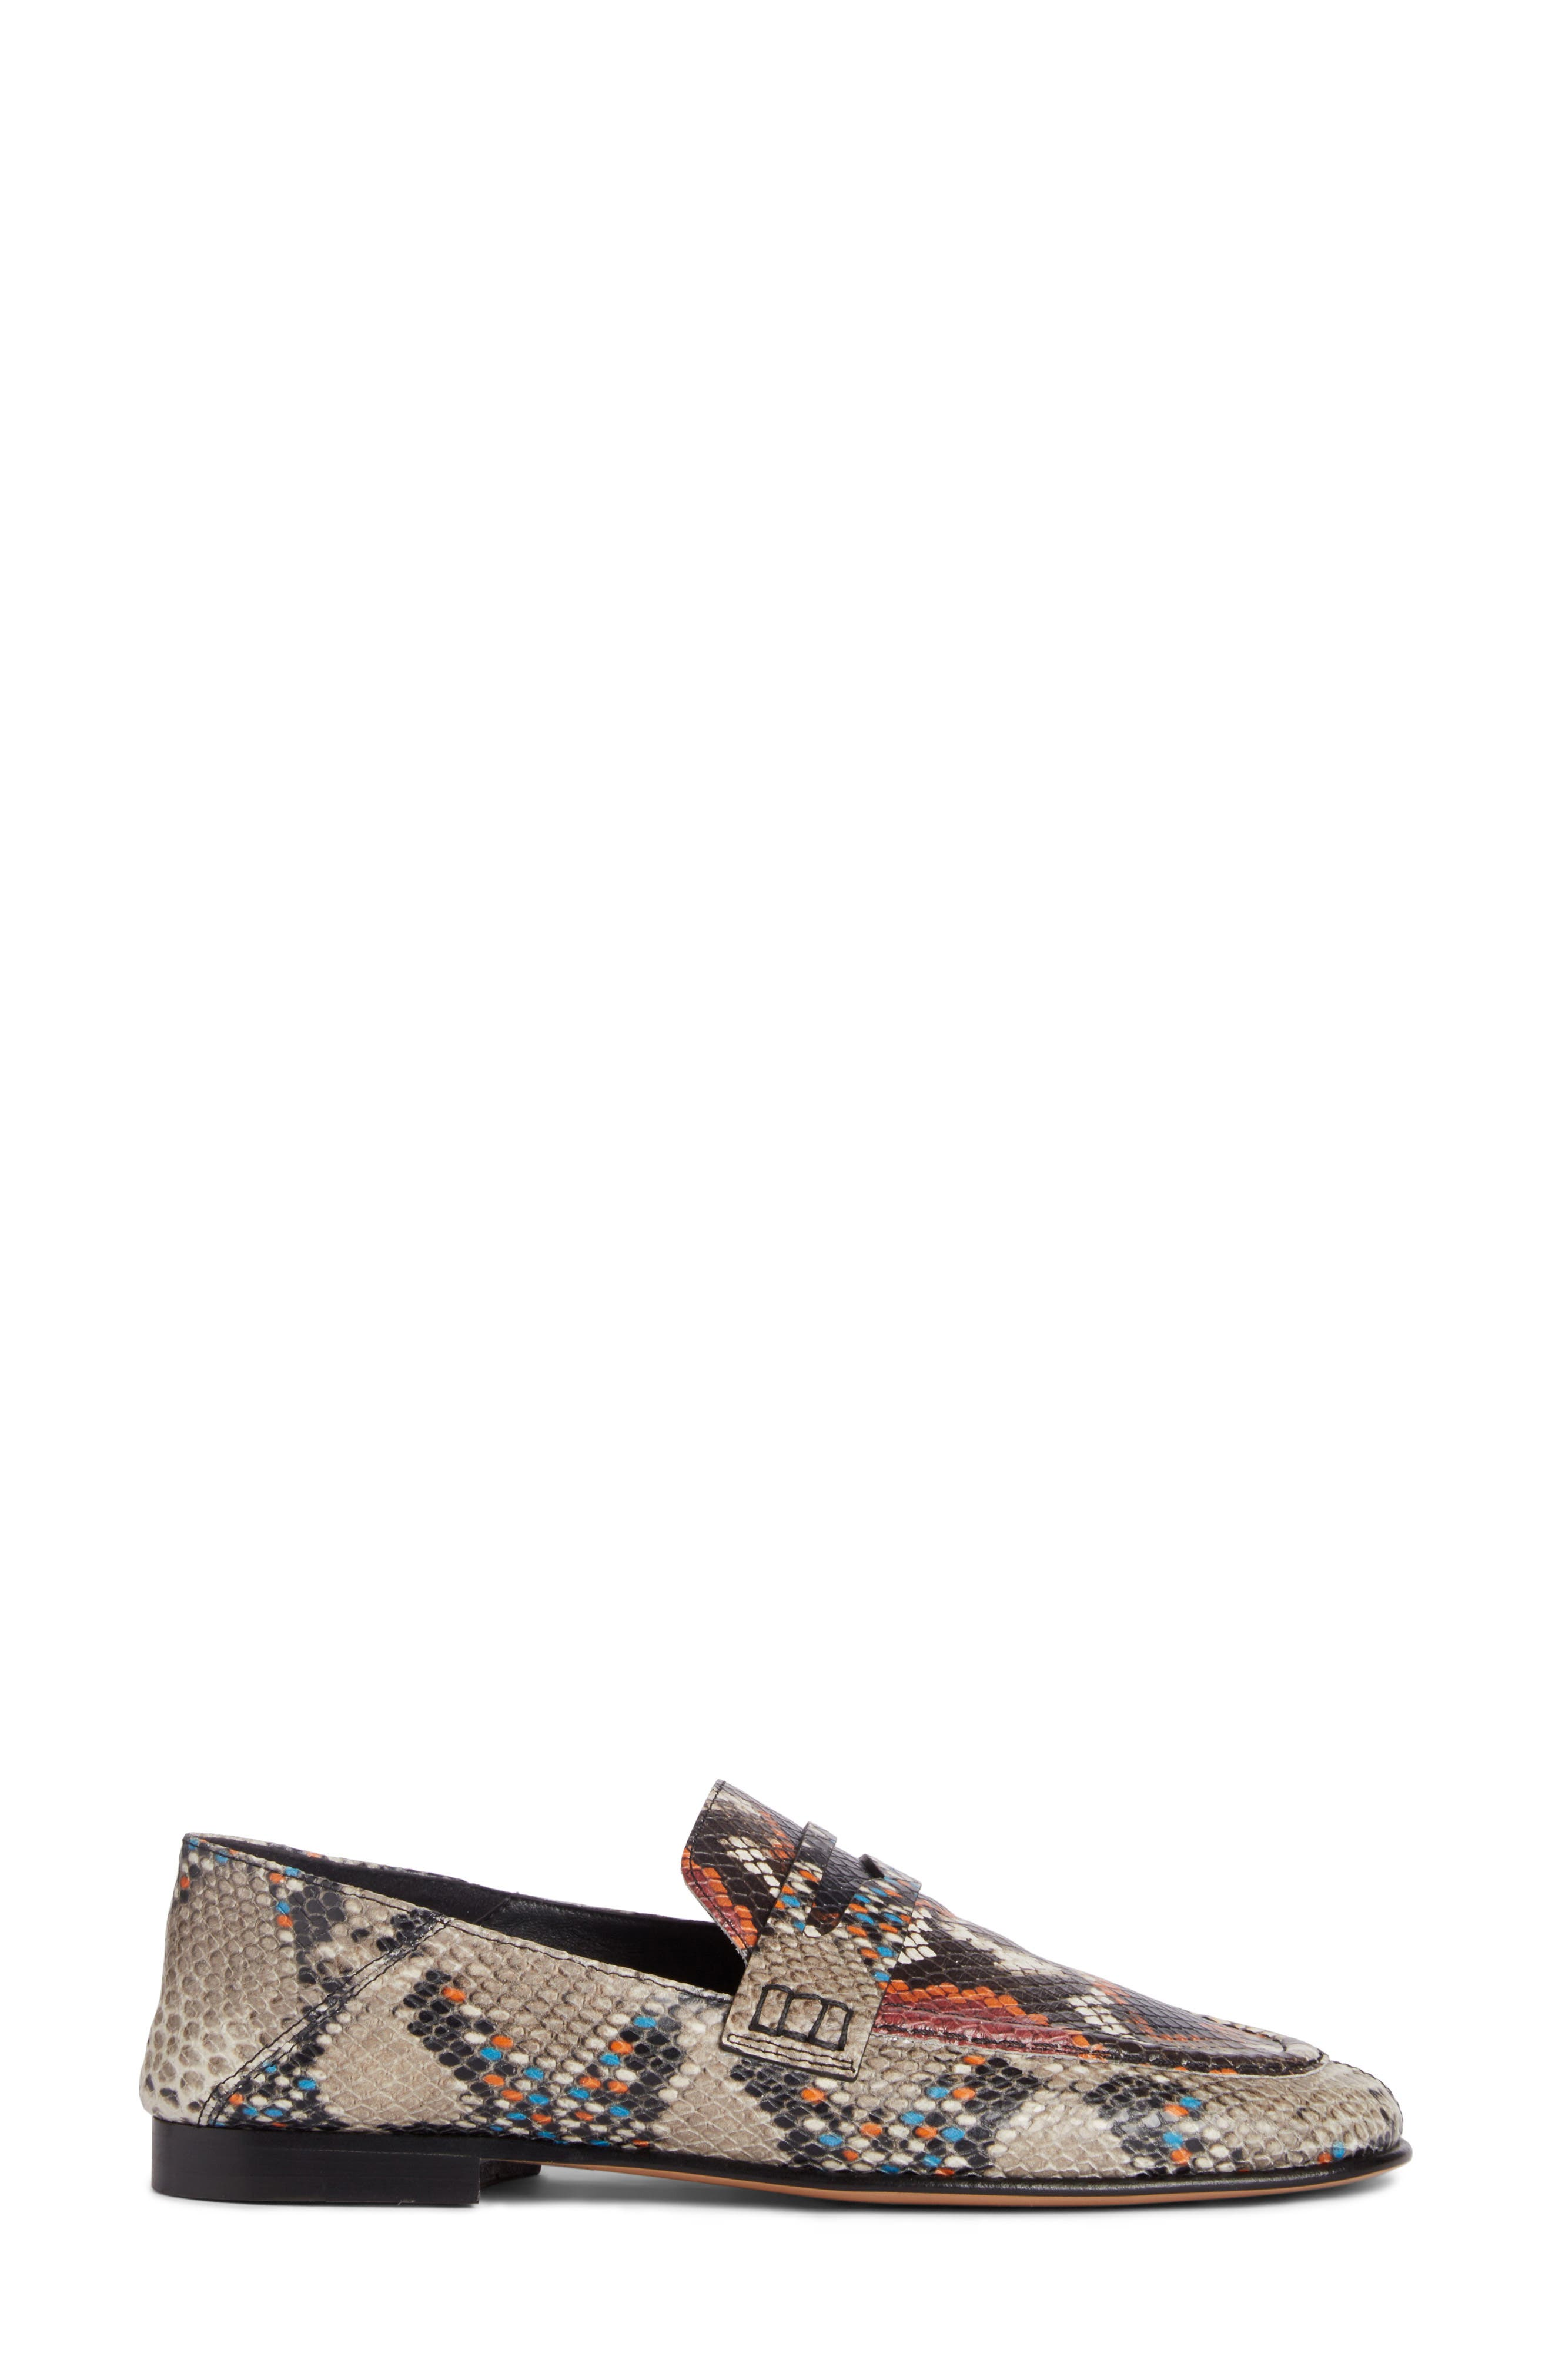 Alternate Image 2  - Isabel Marant Fezzy Snakeskin Embossed Convertible Loafer (Women)